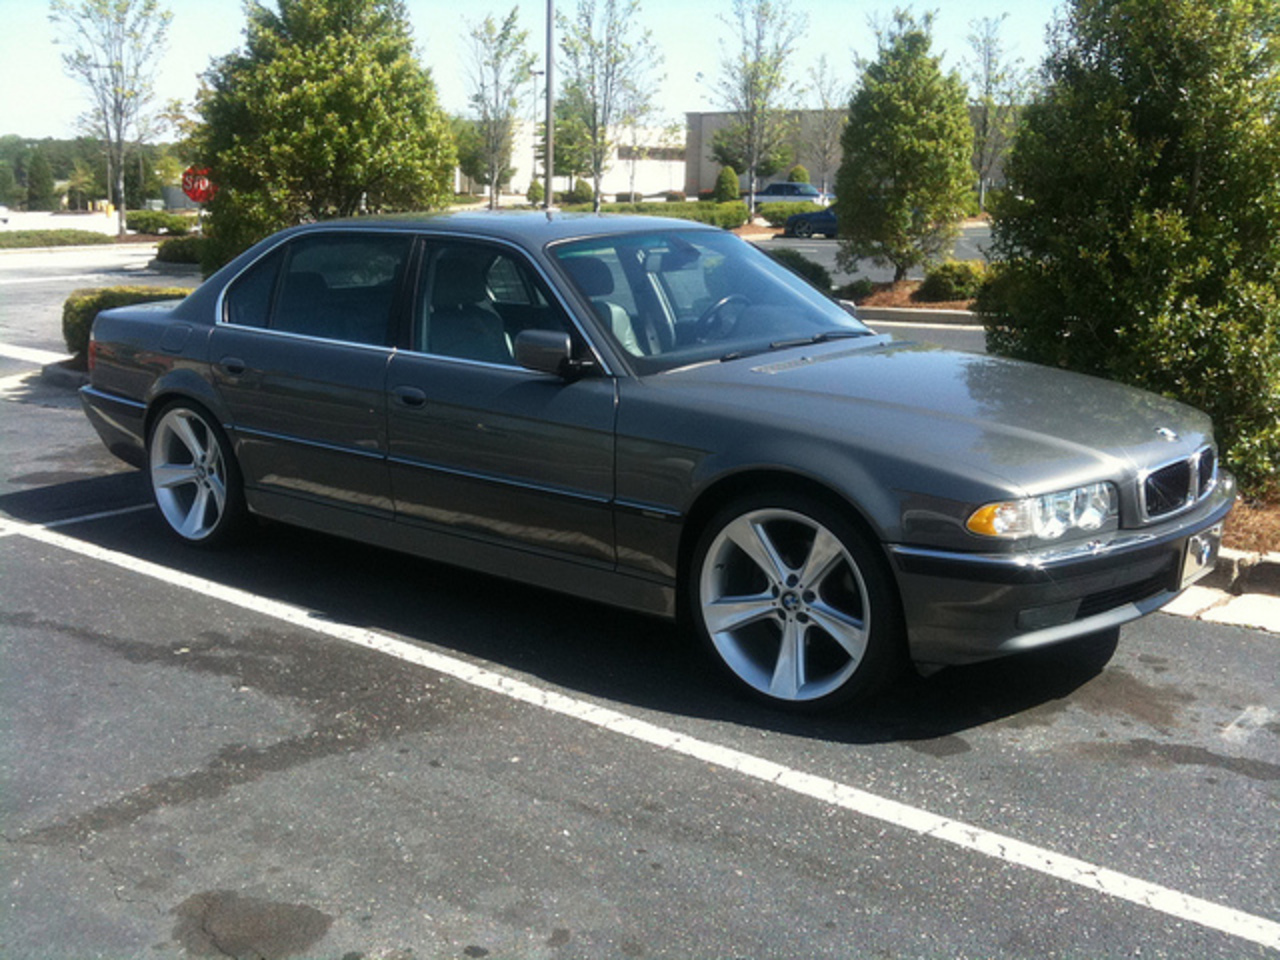 E38 BMW 740i, 740il, 7er, 7series, | Flickr - Photo Sharing!